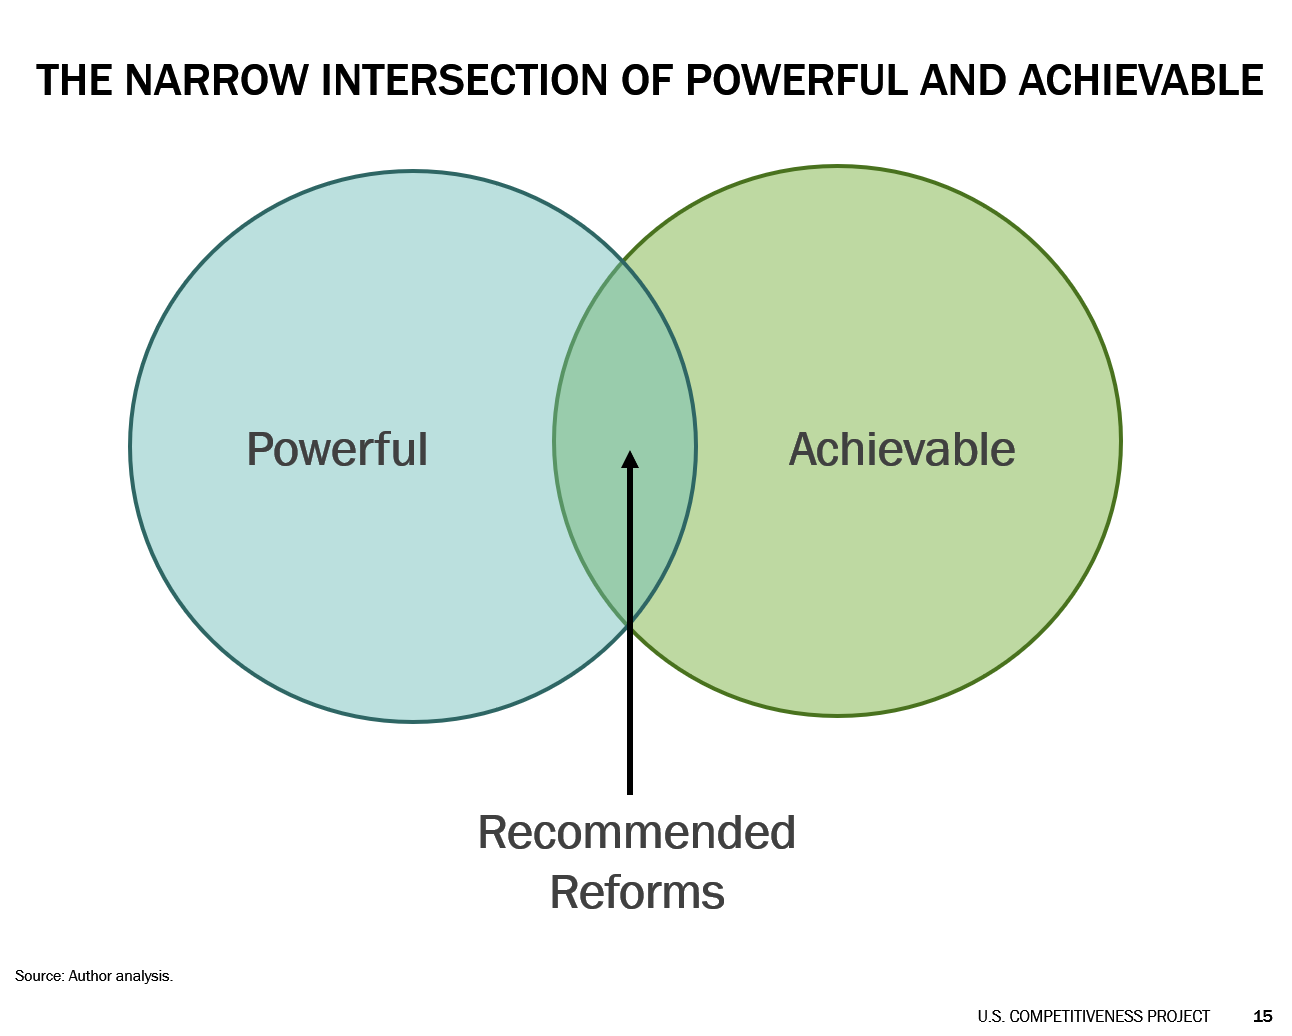 Figure 1: The Intersection of Powerful and Achievable